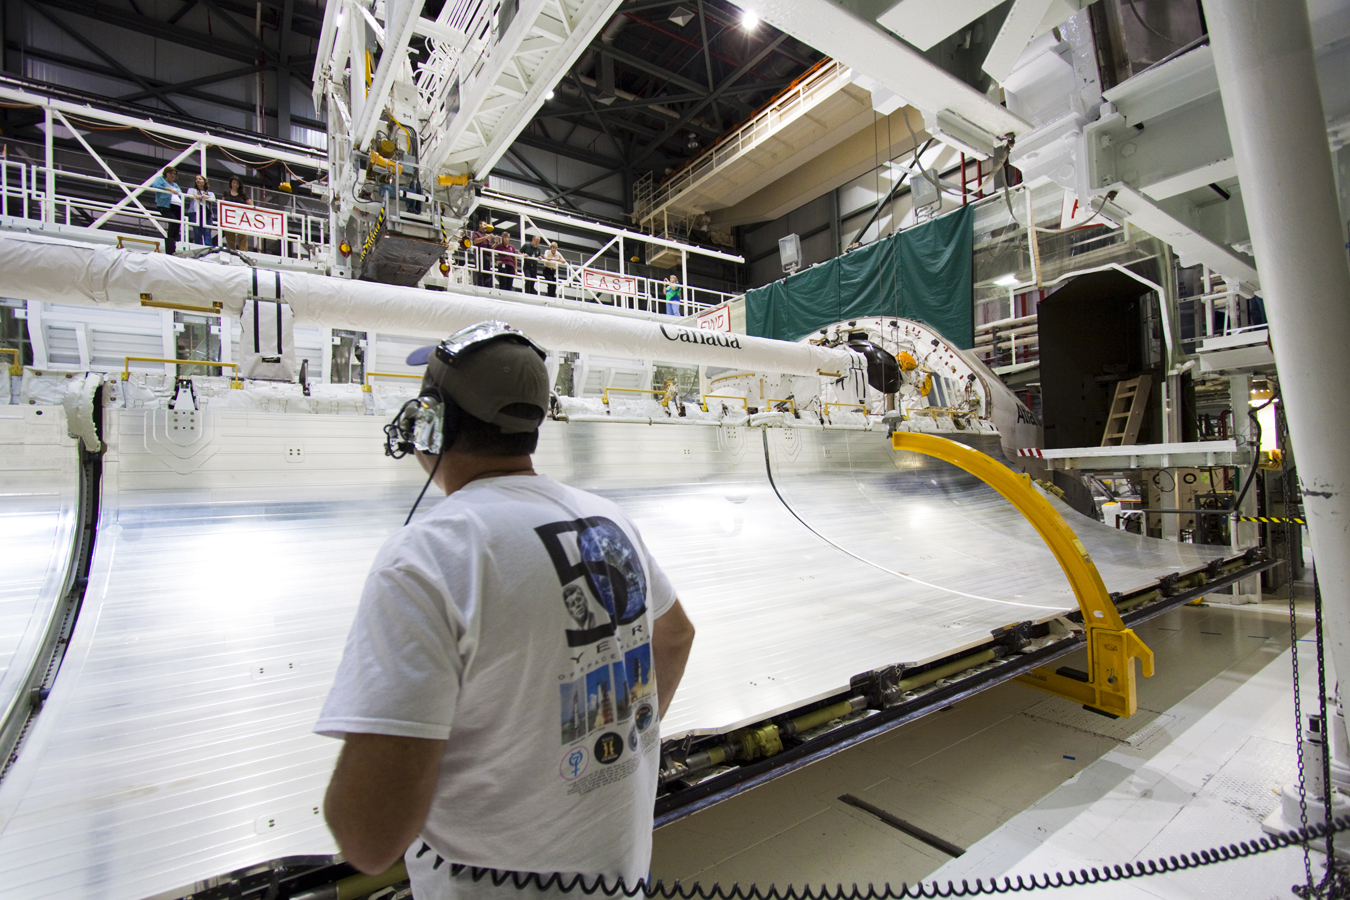 space shuttle payload bay doors - photo #7